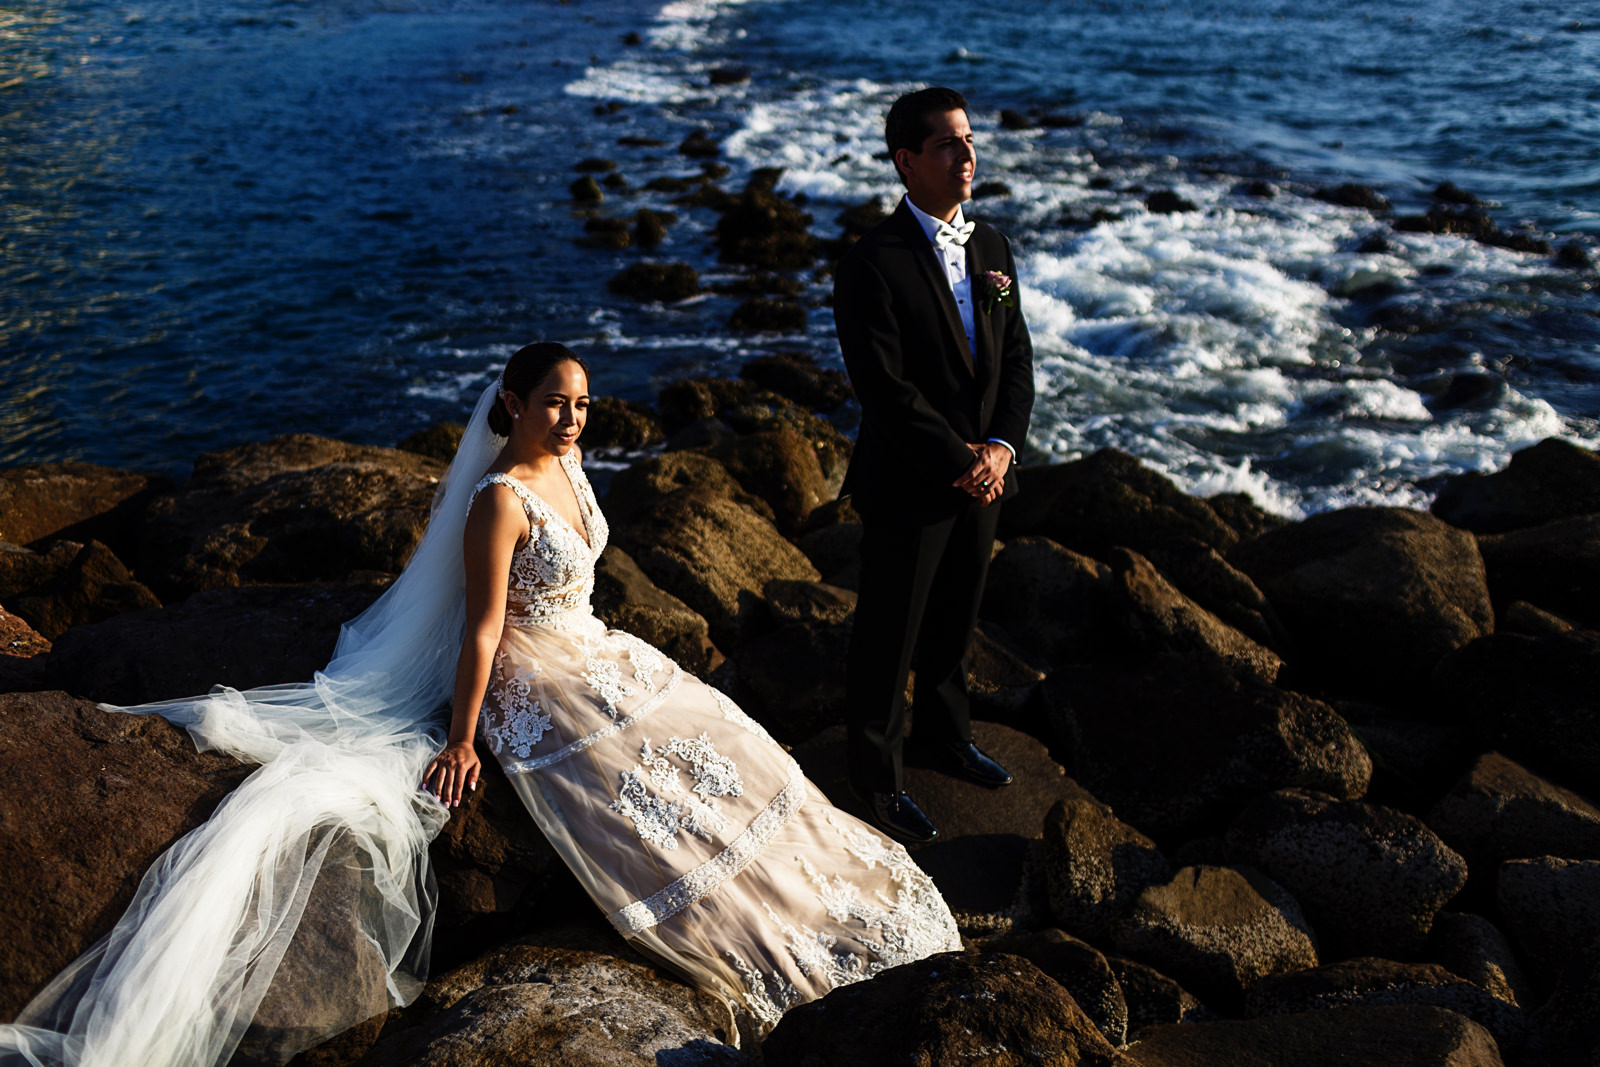 Portrait of bride and groom on the rocks with the ocean in the background